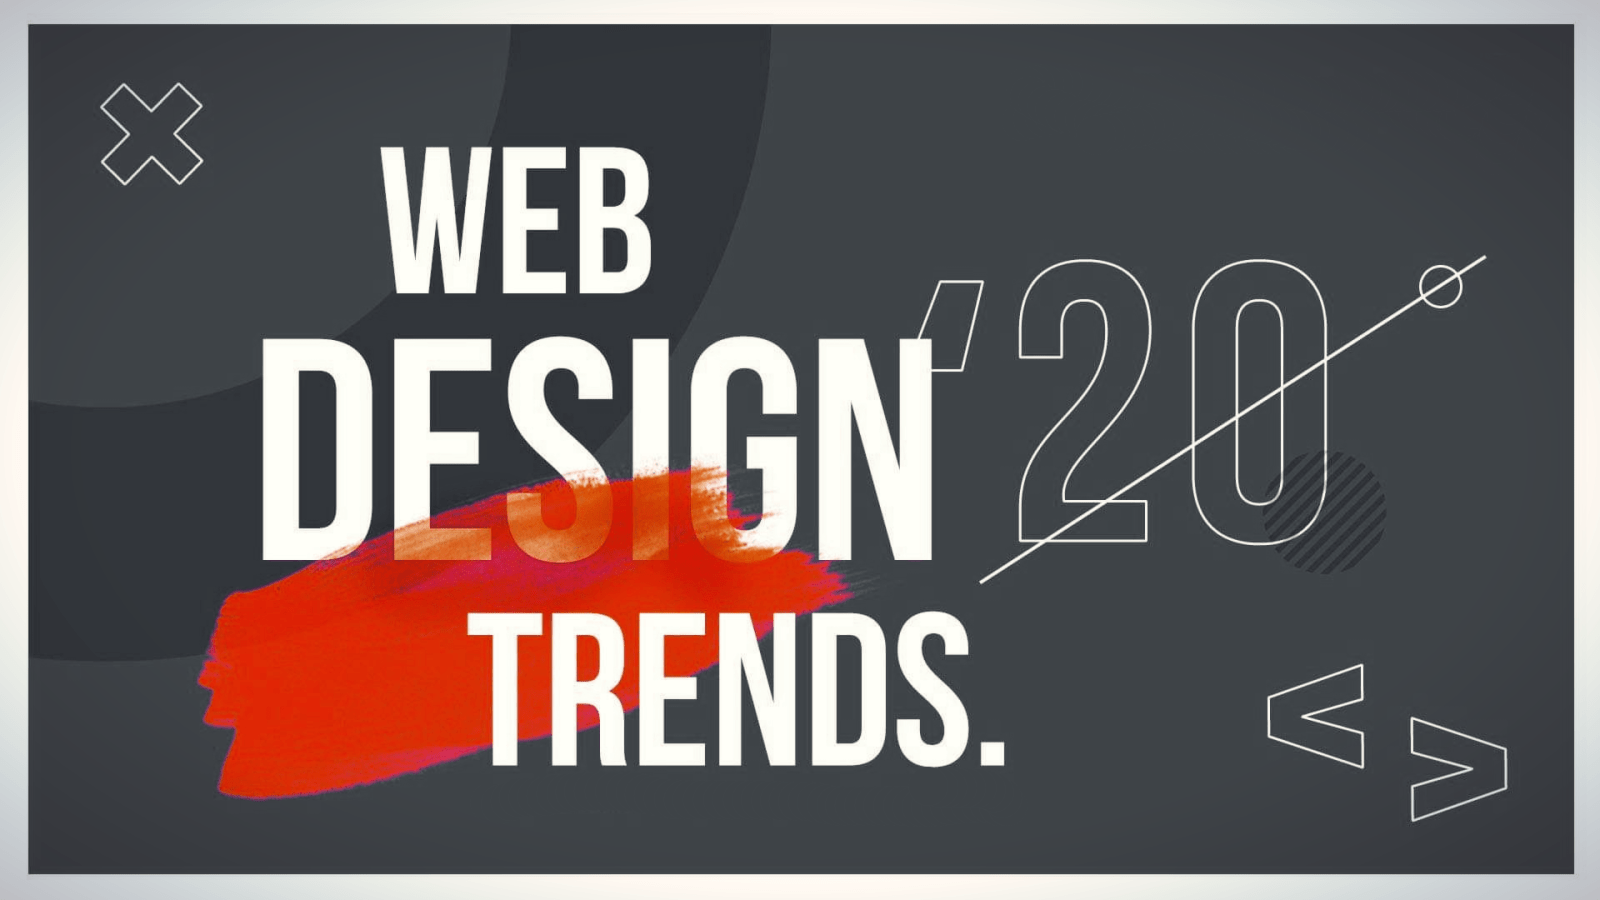 Web Design Trends 2020 - Sheena Marie